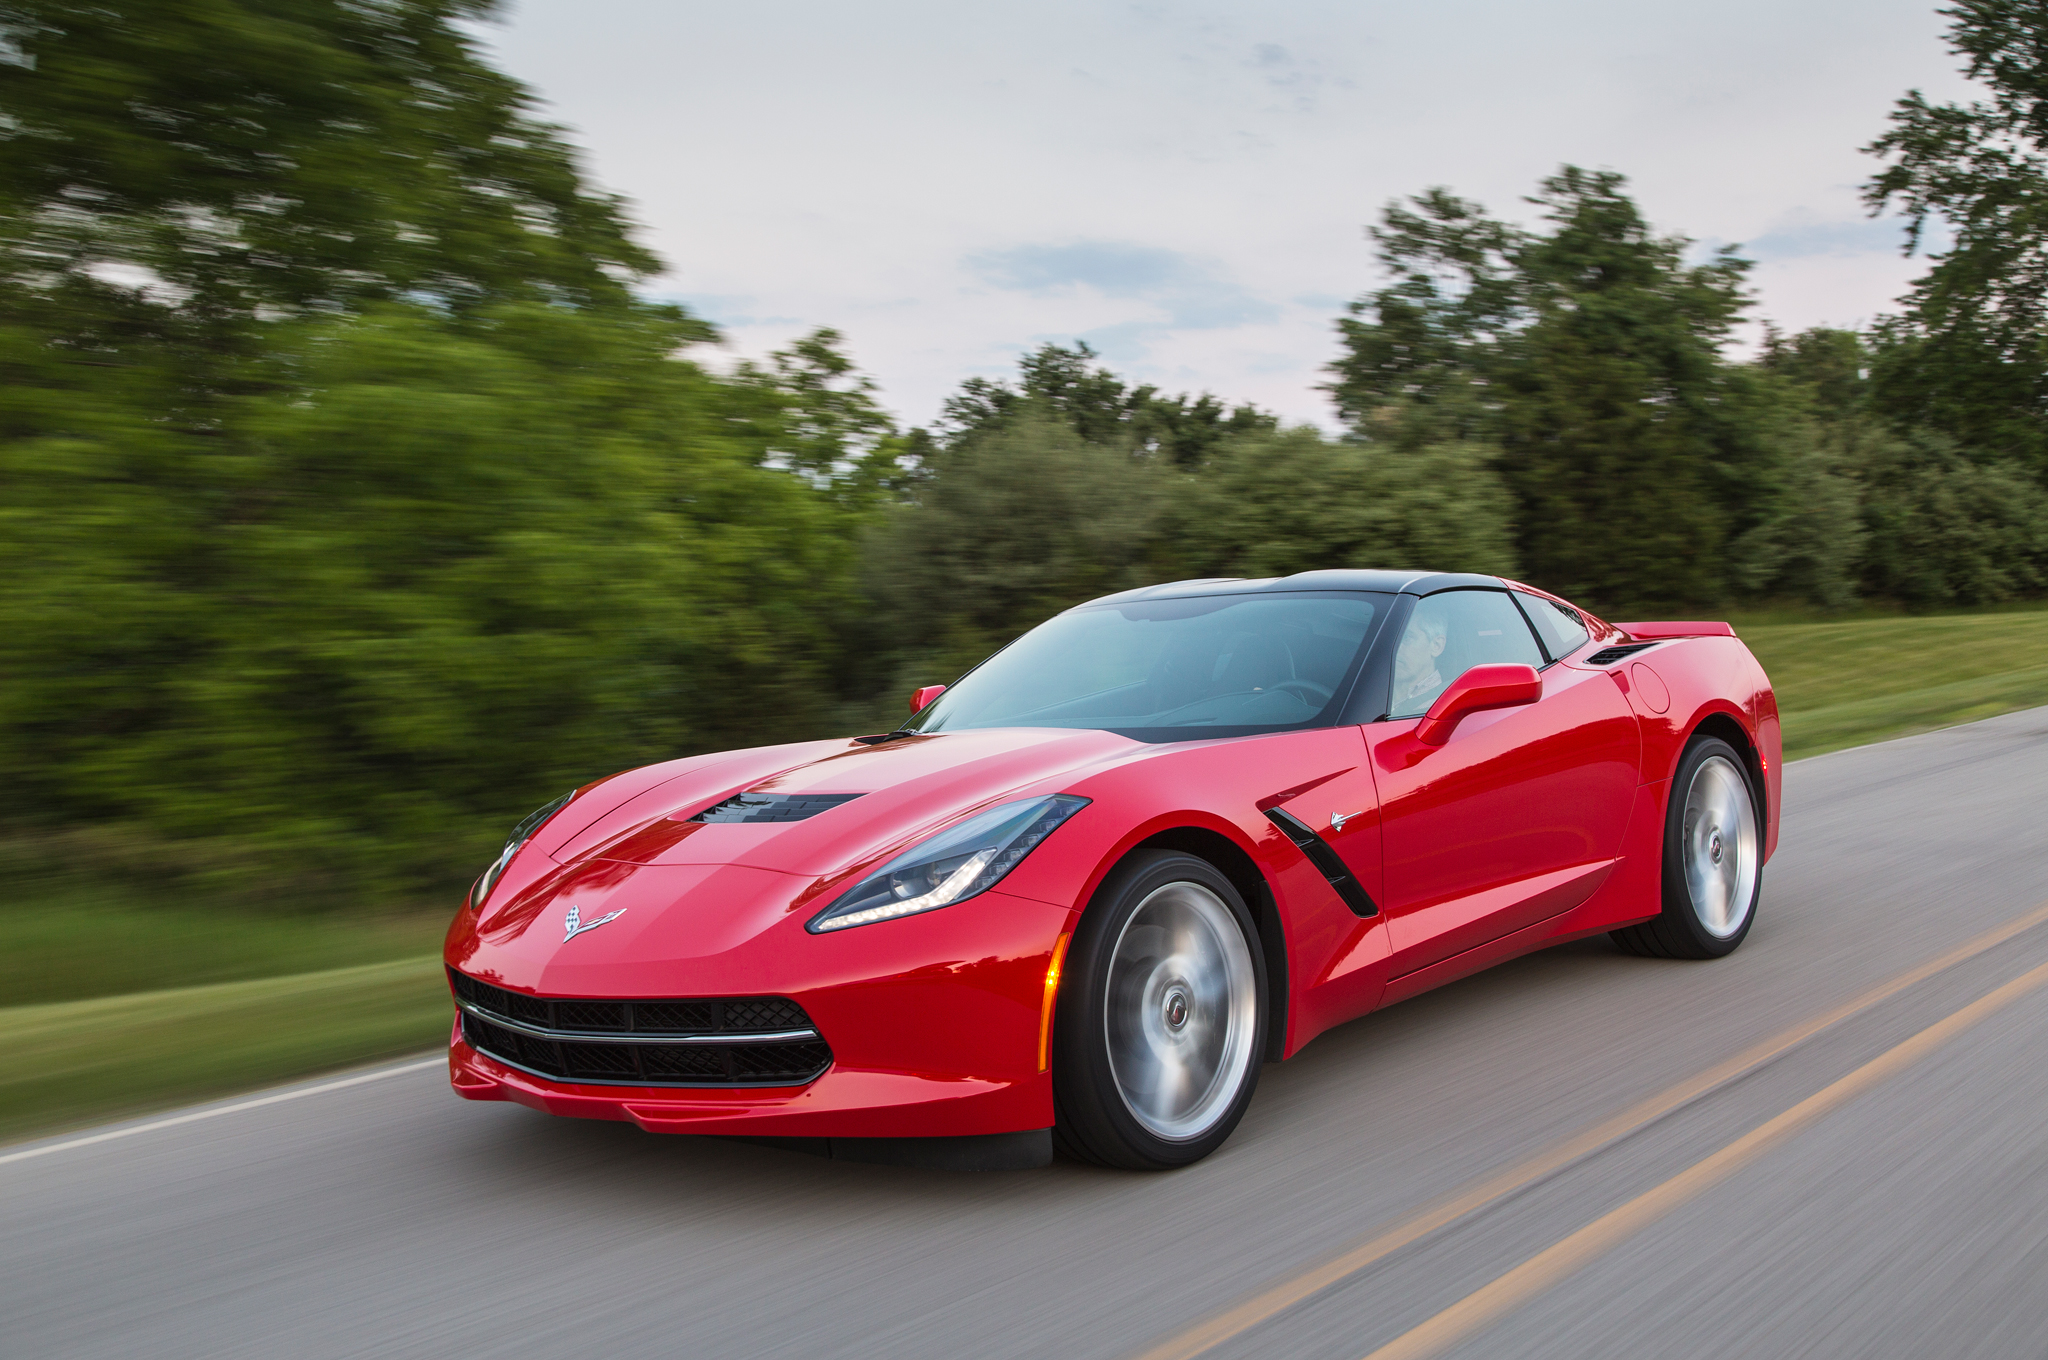 2014 Chevrolet Corvette Stingray Z51 Test Drive